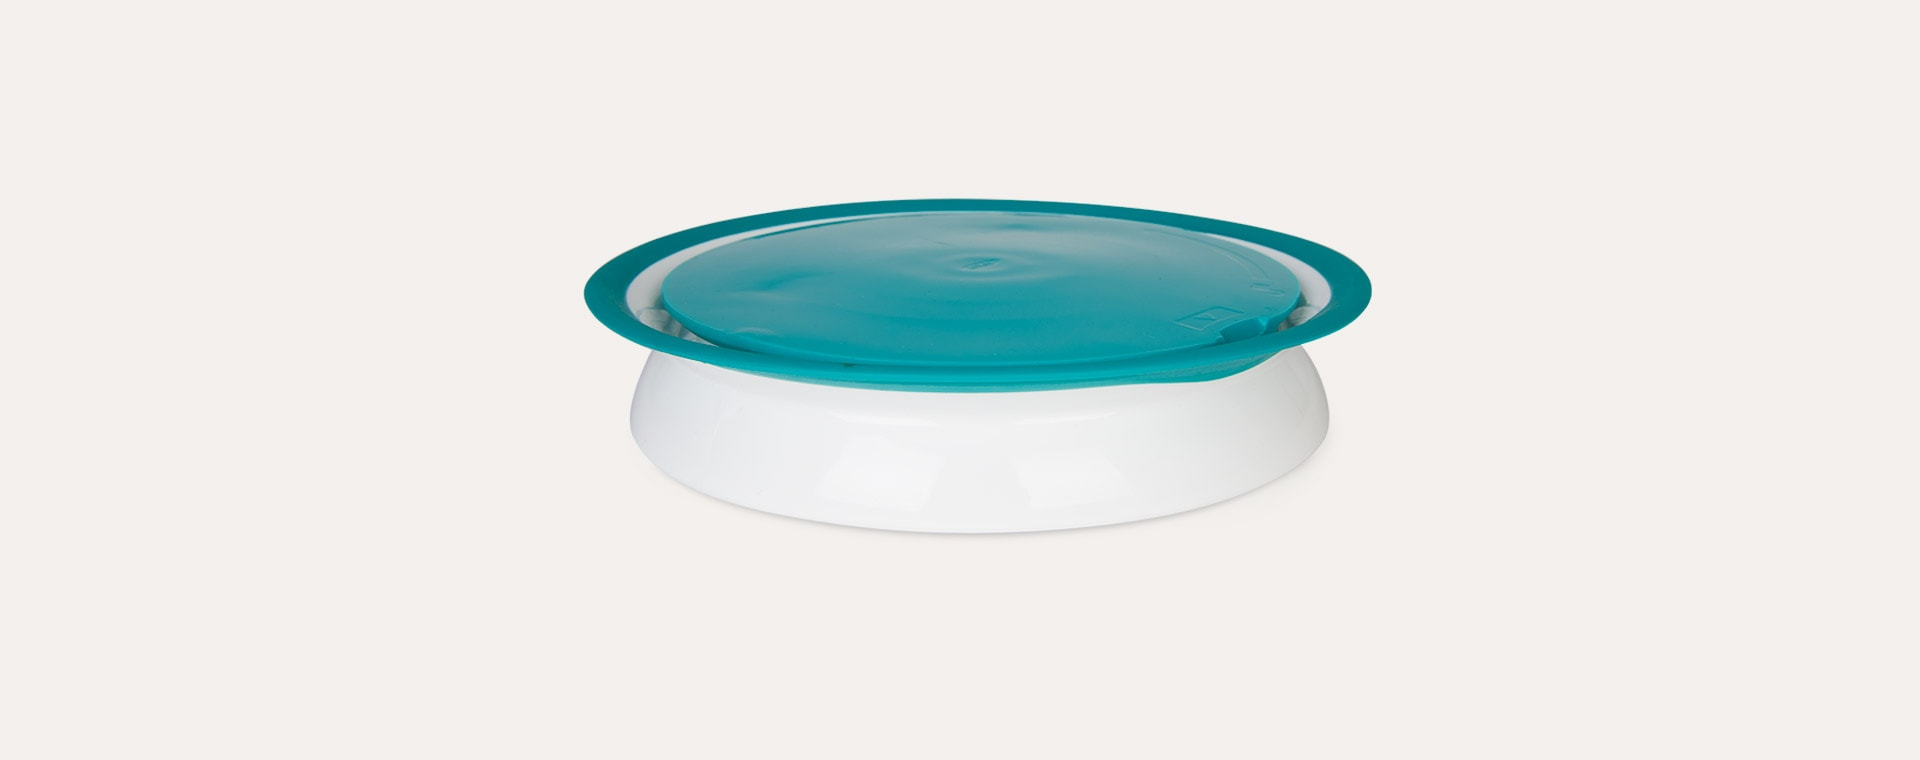 Teal Oxo Tot Stick & Stay Suction Divided Plate